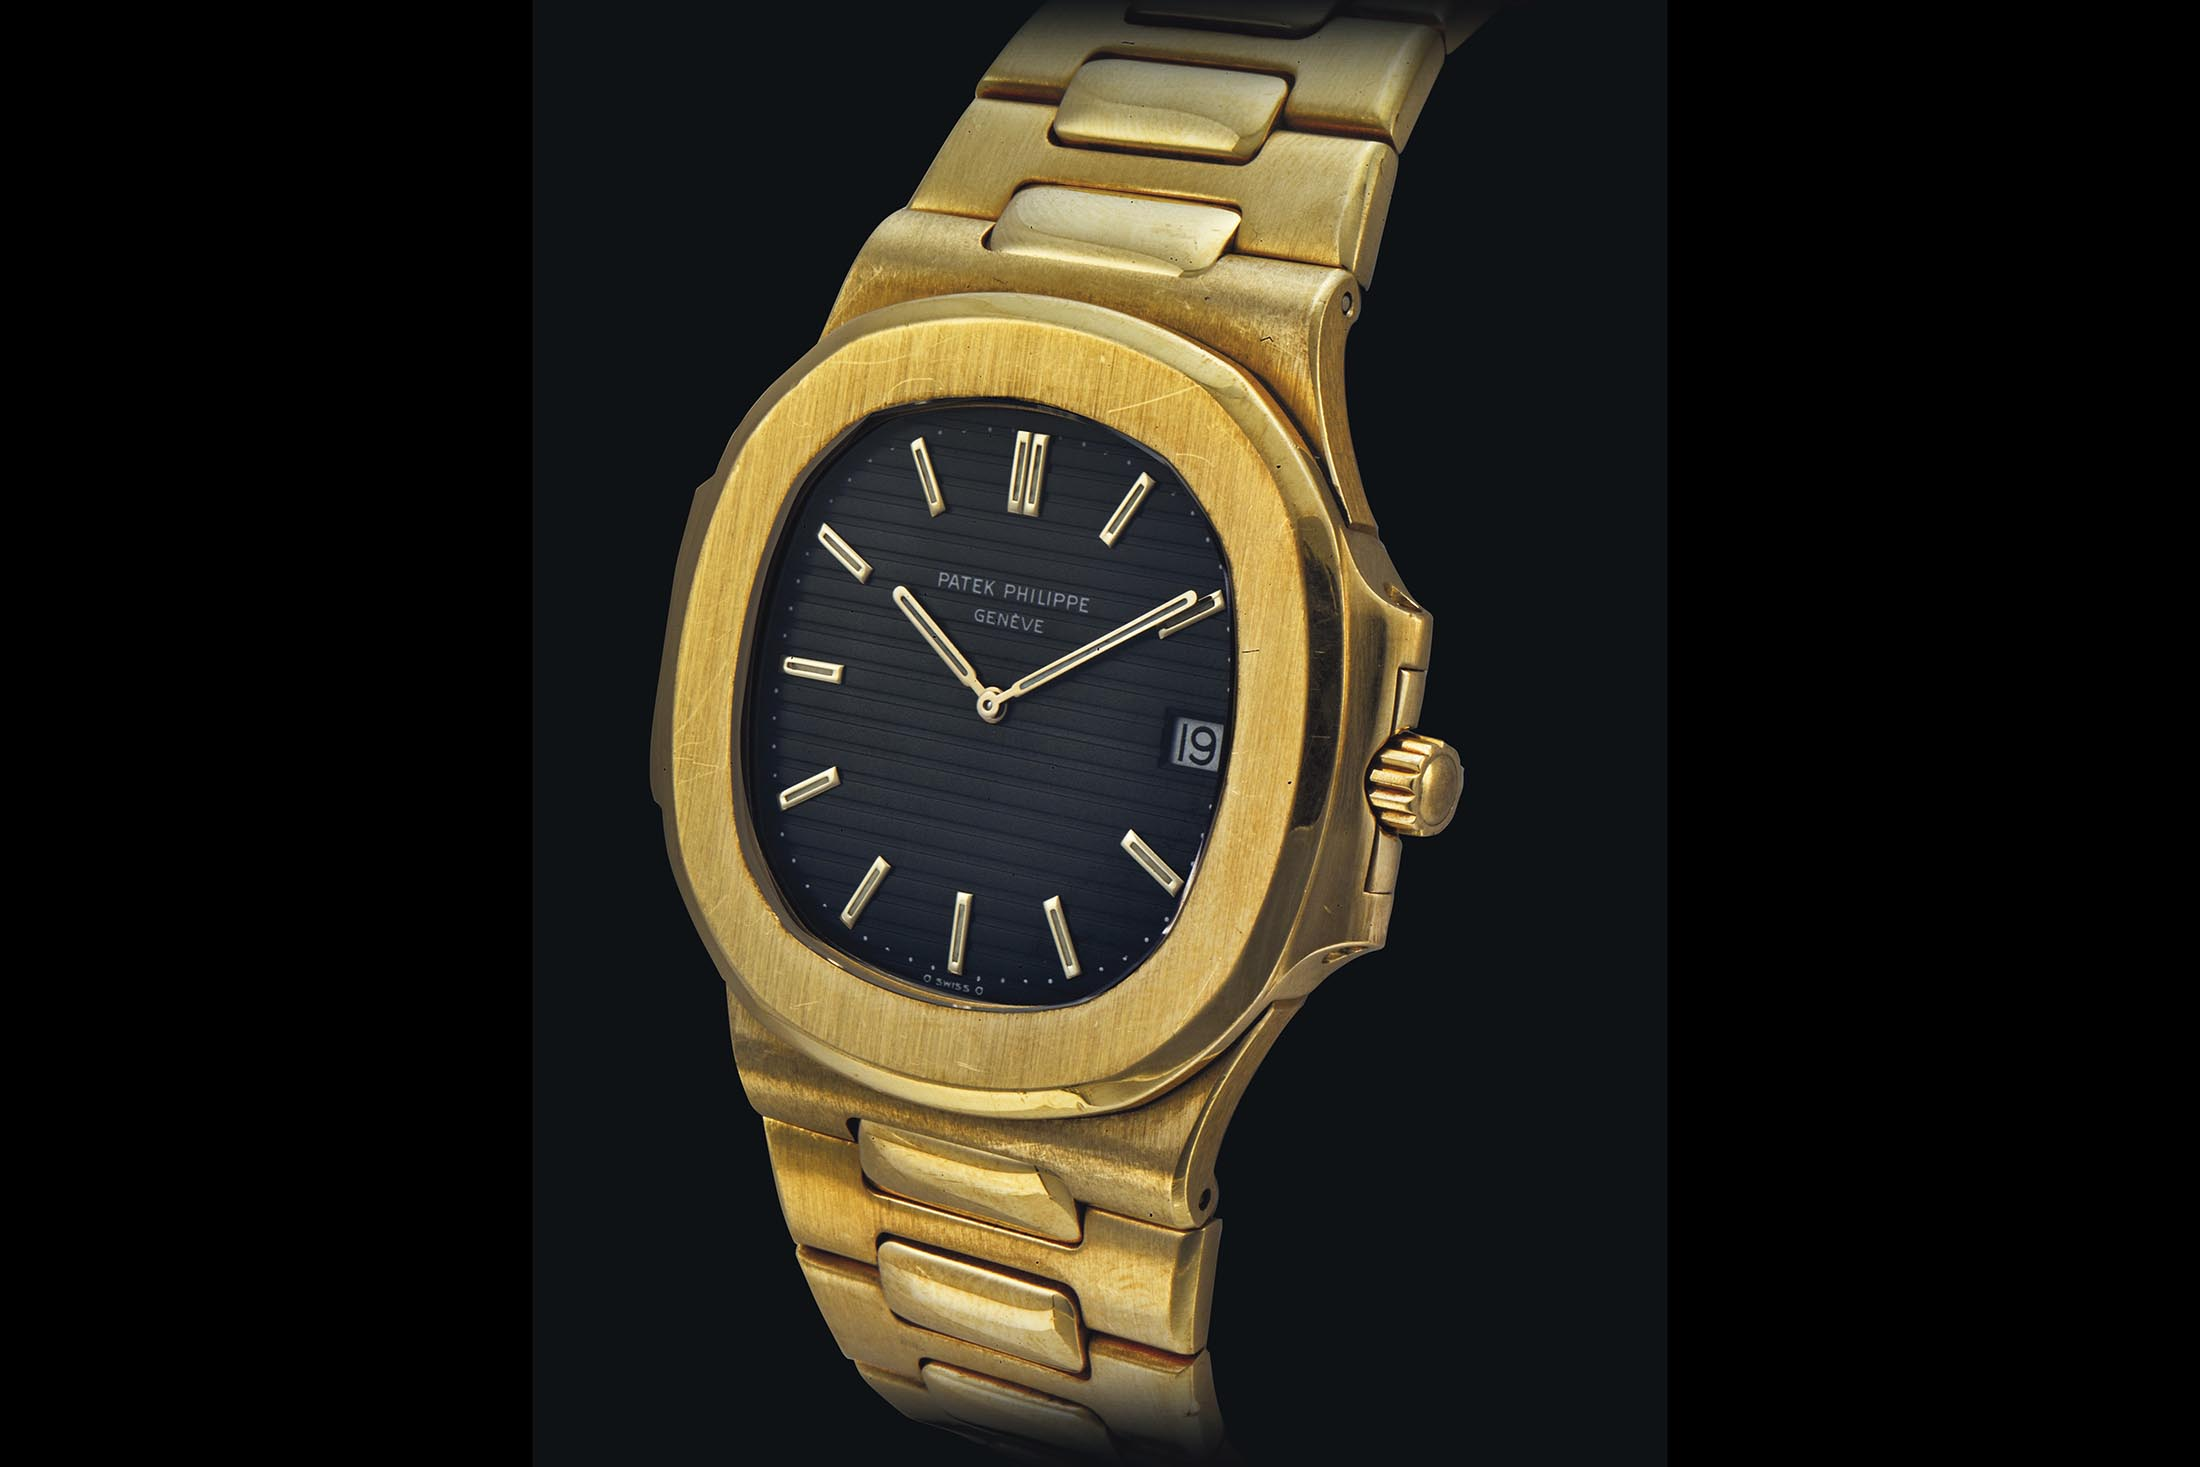 Patek Philippe 18K Gold Nautilus Automatic Wristwatch